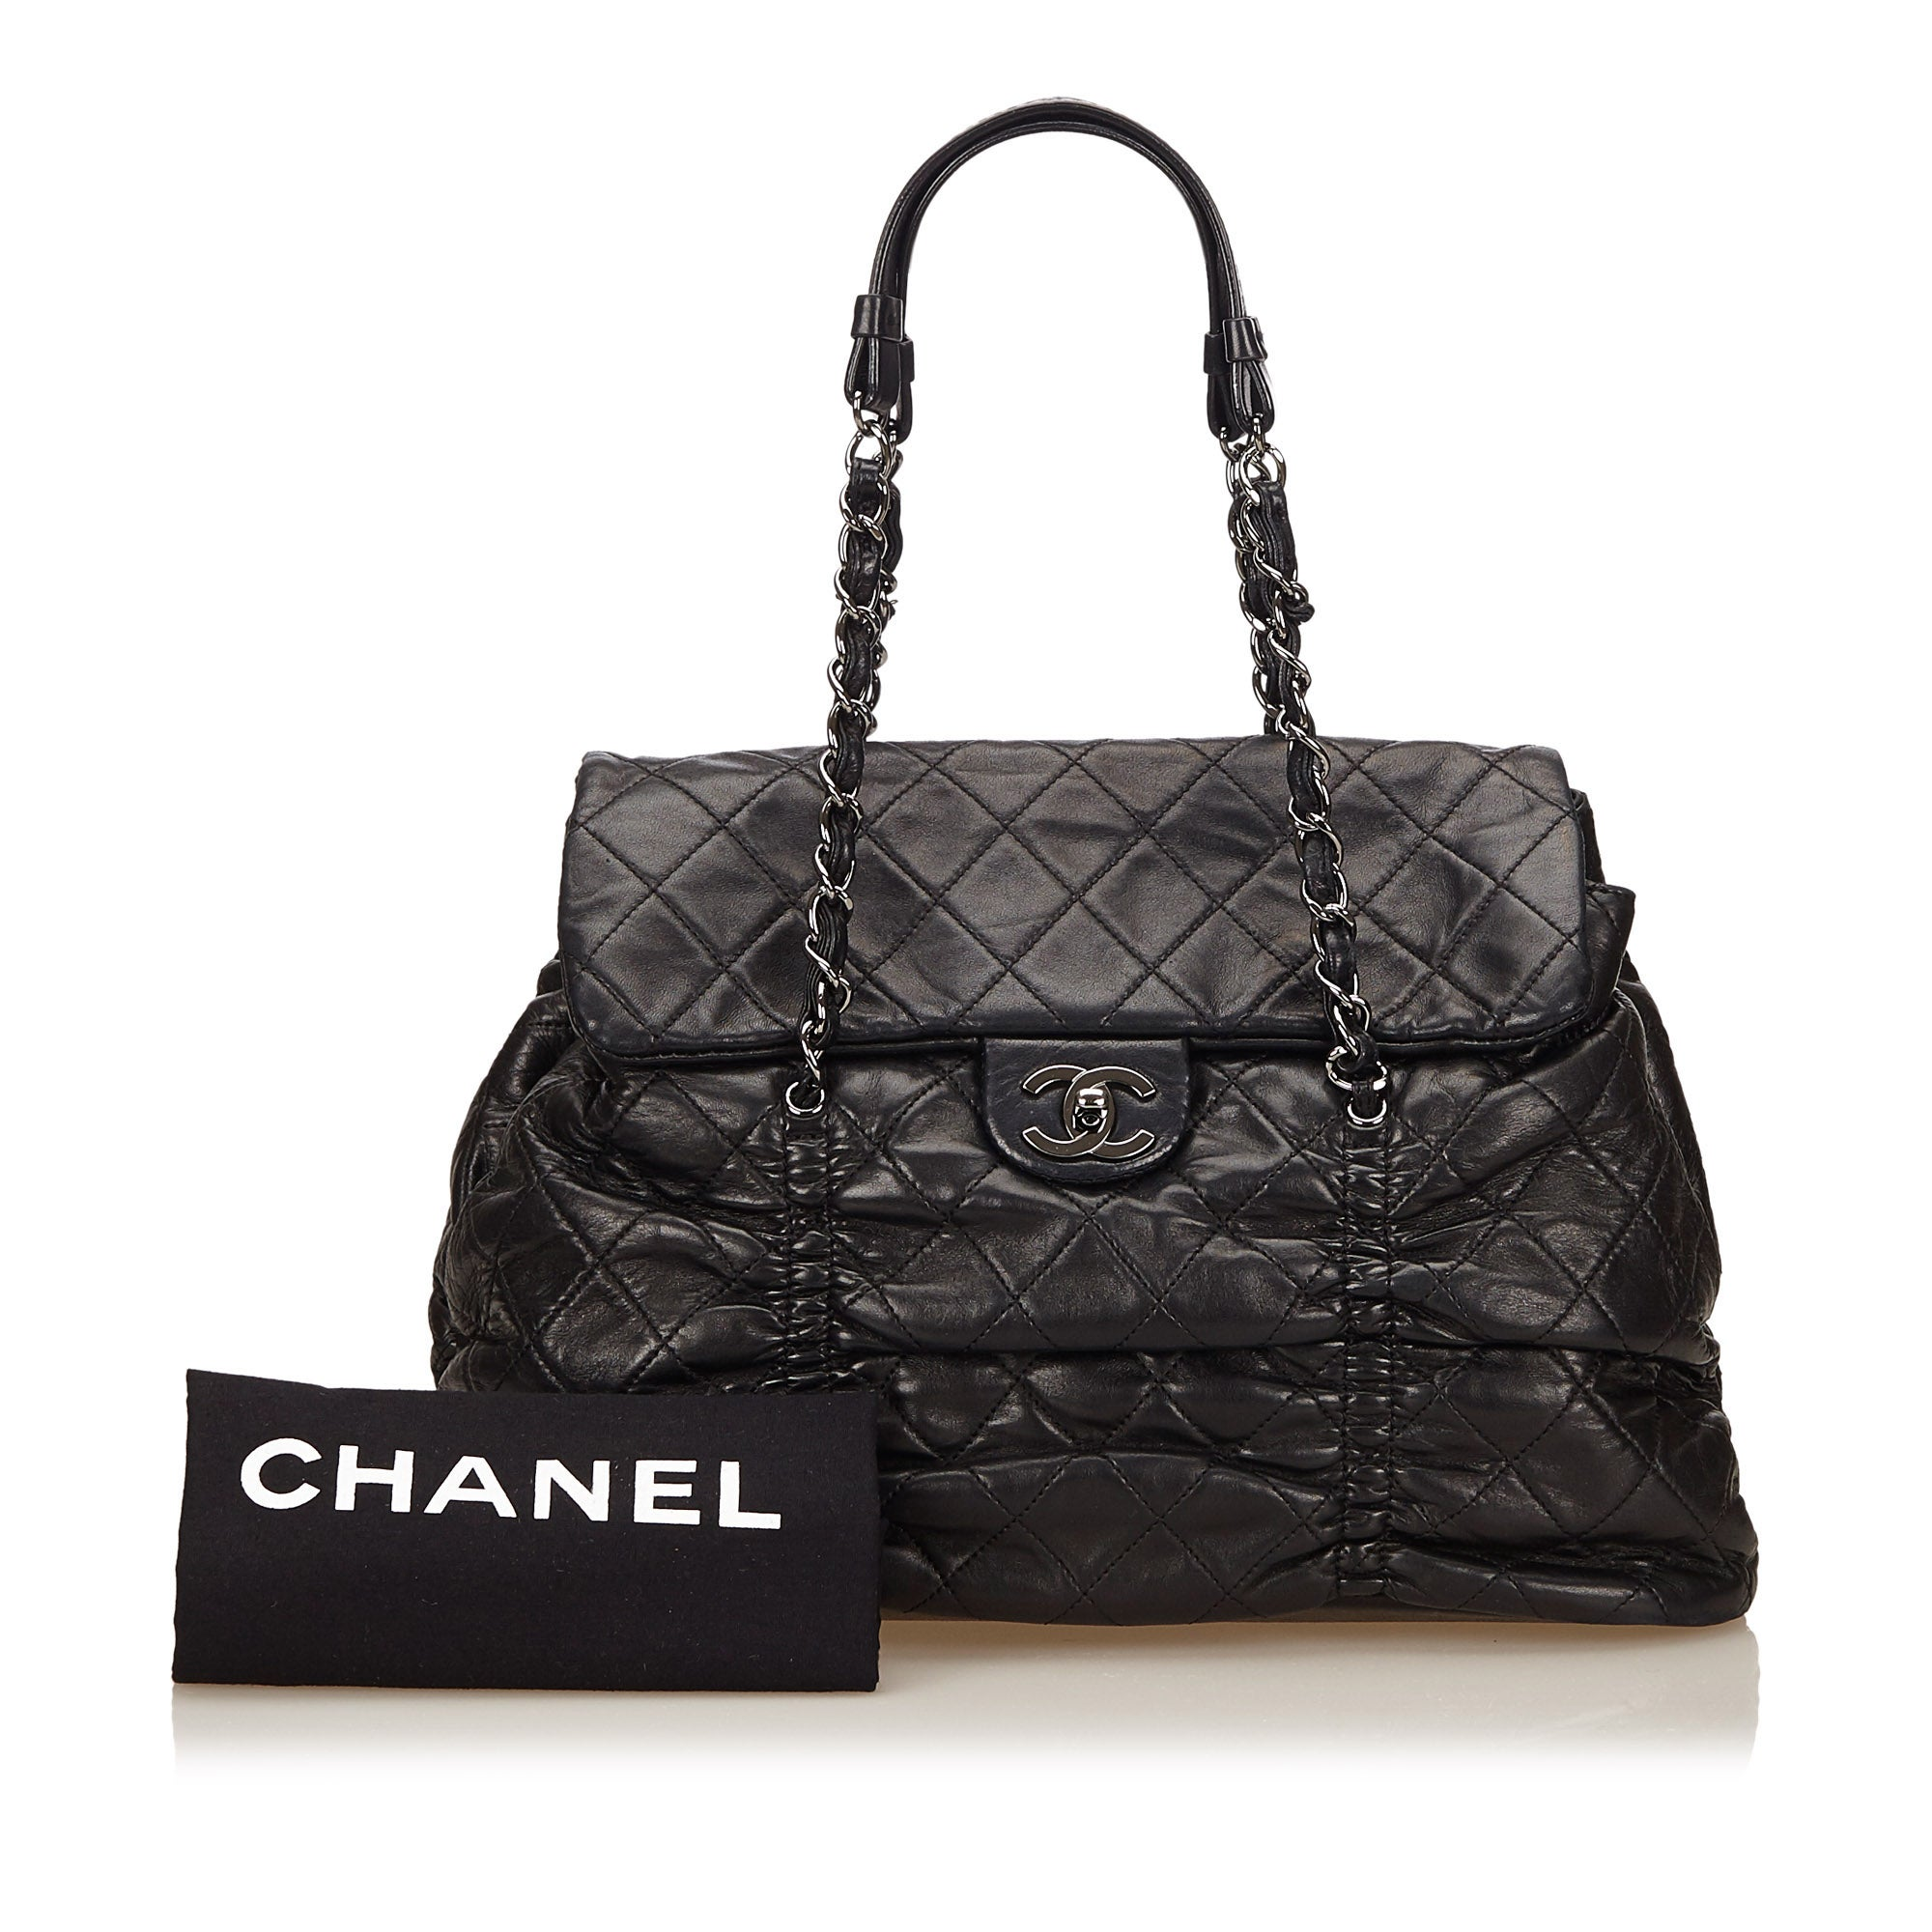 36da186fb903 Chanel Black Quilted Lambskin Leather Matelasse Tote Bag For Sale at 1stdibs